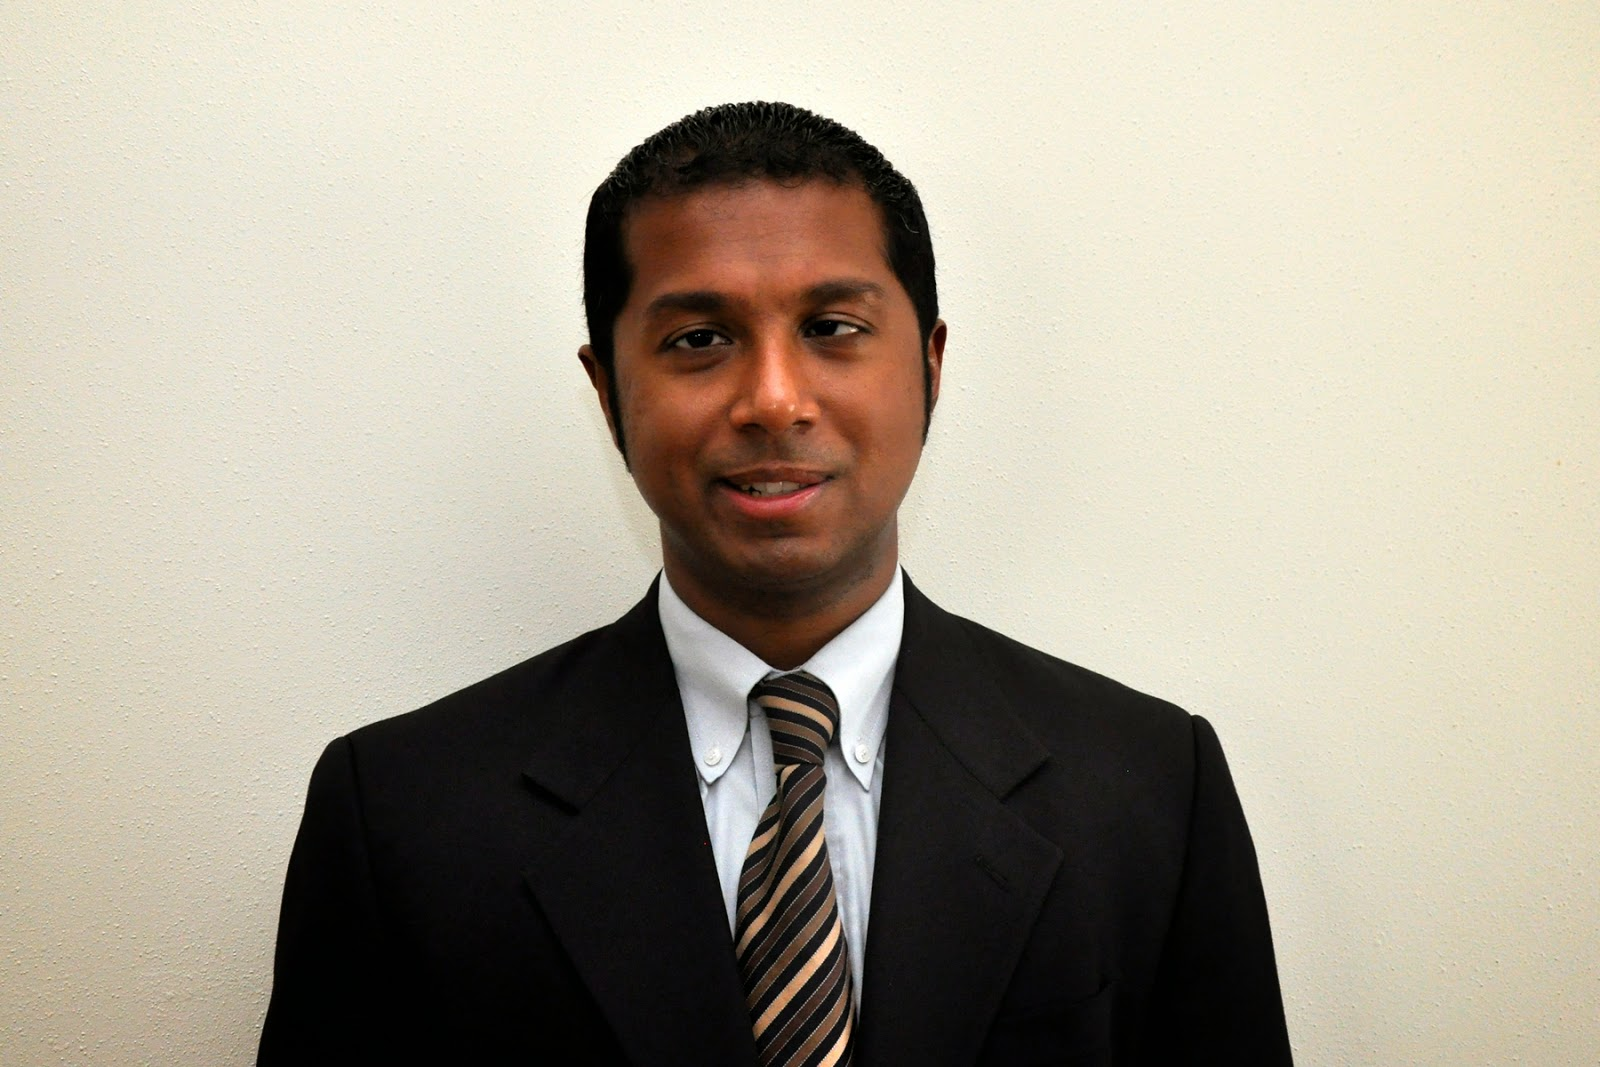 UATP director, and US Access Board vice chair, Sachin Pavithran.